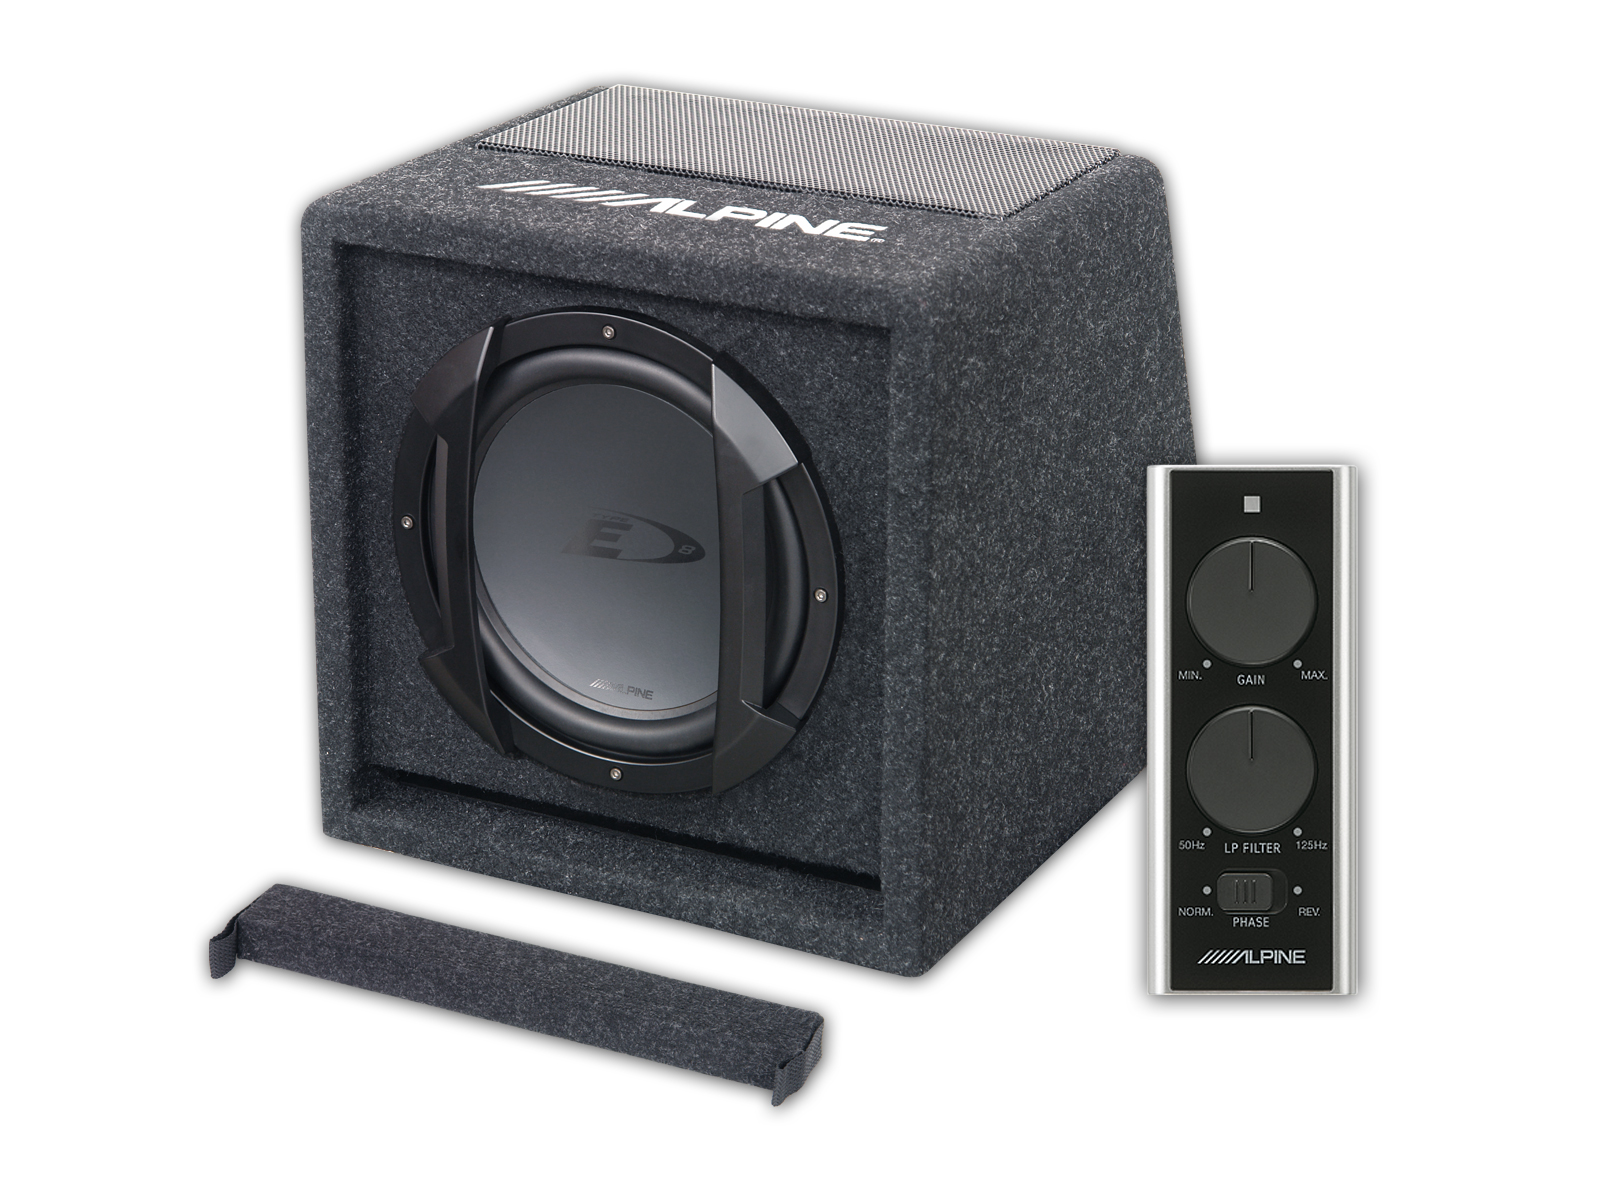 Alpine Swe 815 Active Subwoofer With Wired Remote Control Adam Edge Amp And Wiring Kit